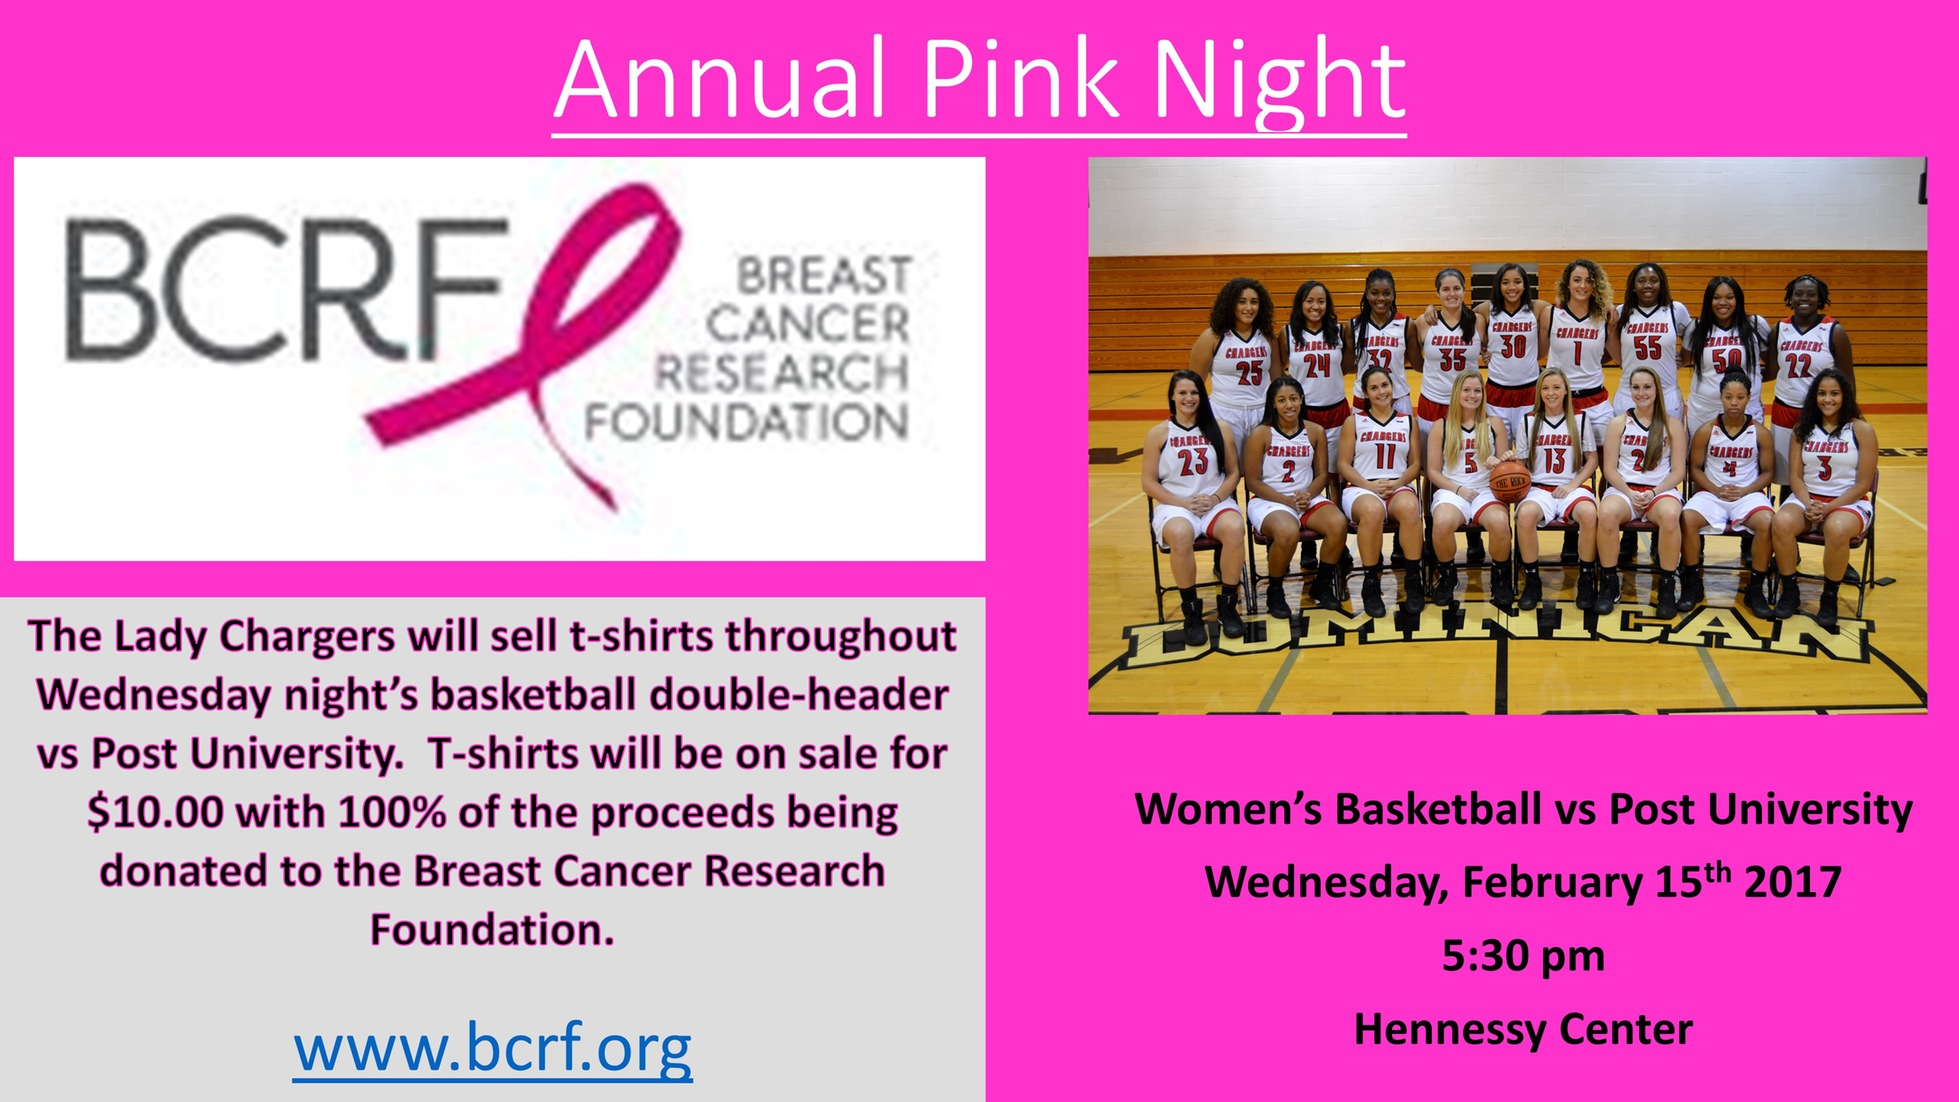 WOMEN'S BASKETBALL TO HOST PINK NIGHT